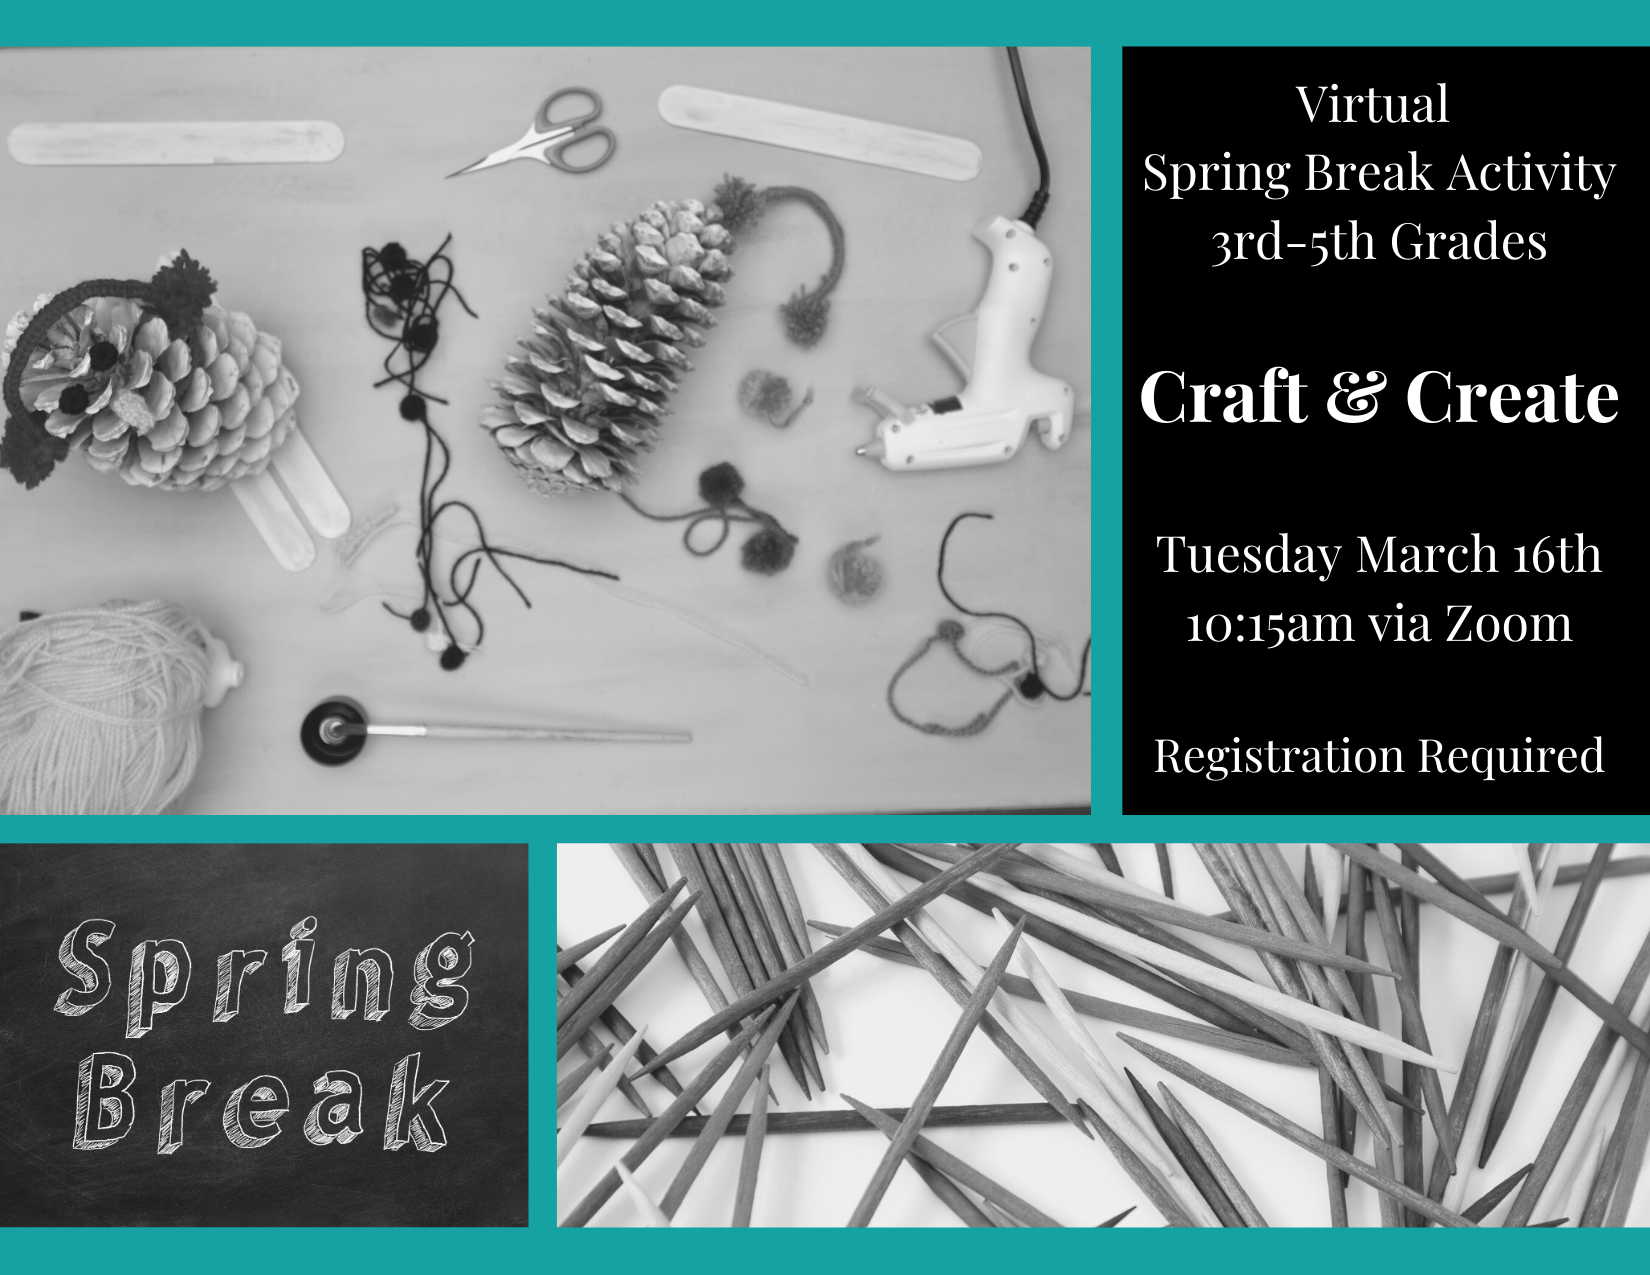 Spring Break 3rd-5th Grades Craft & Create.png